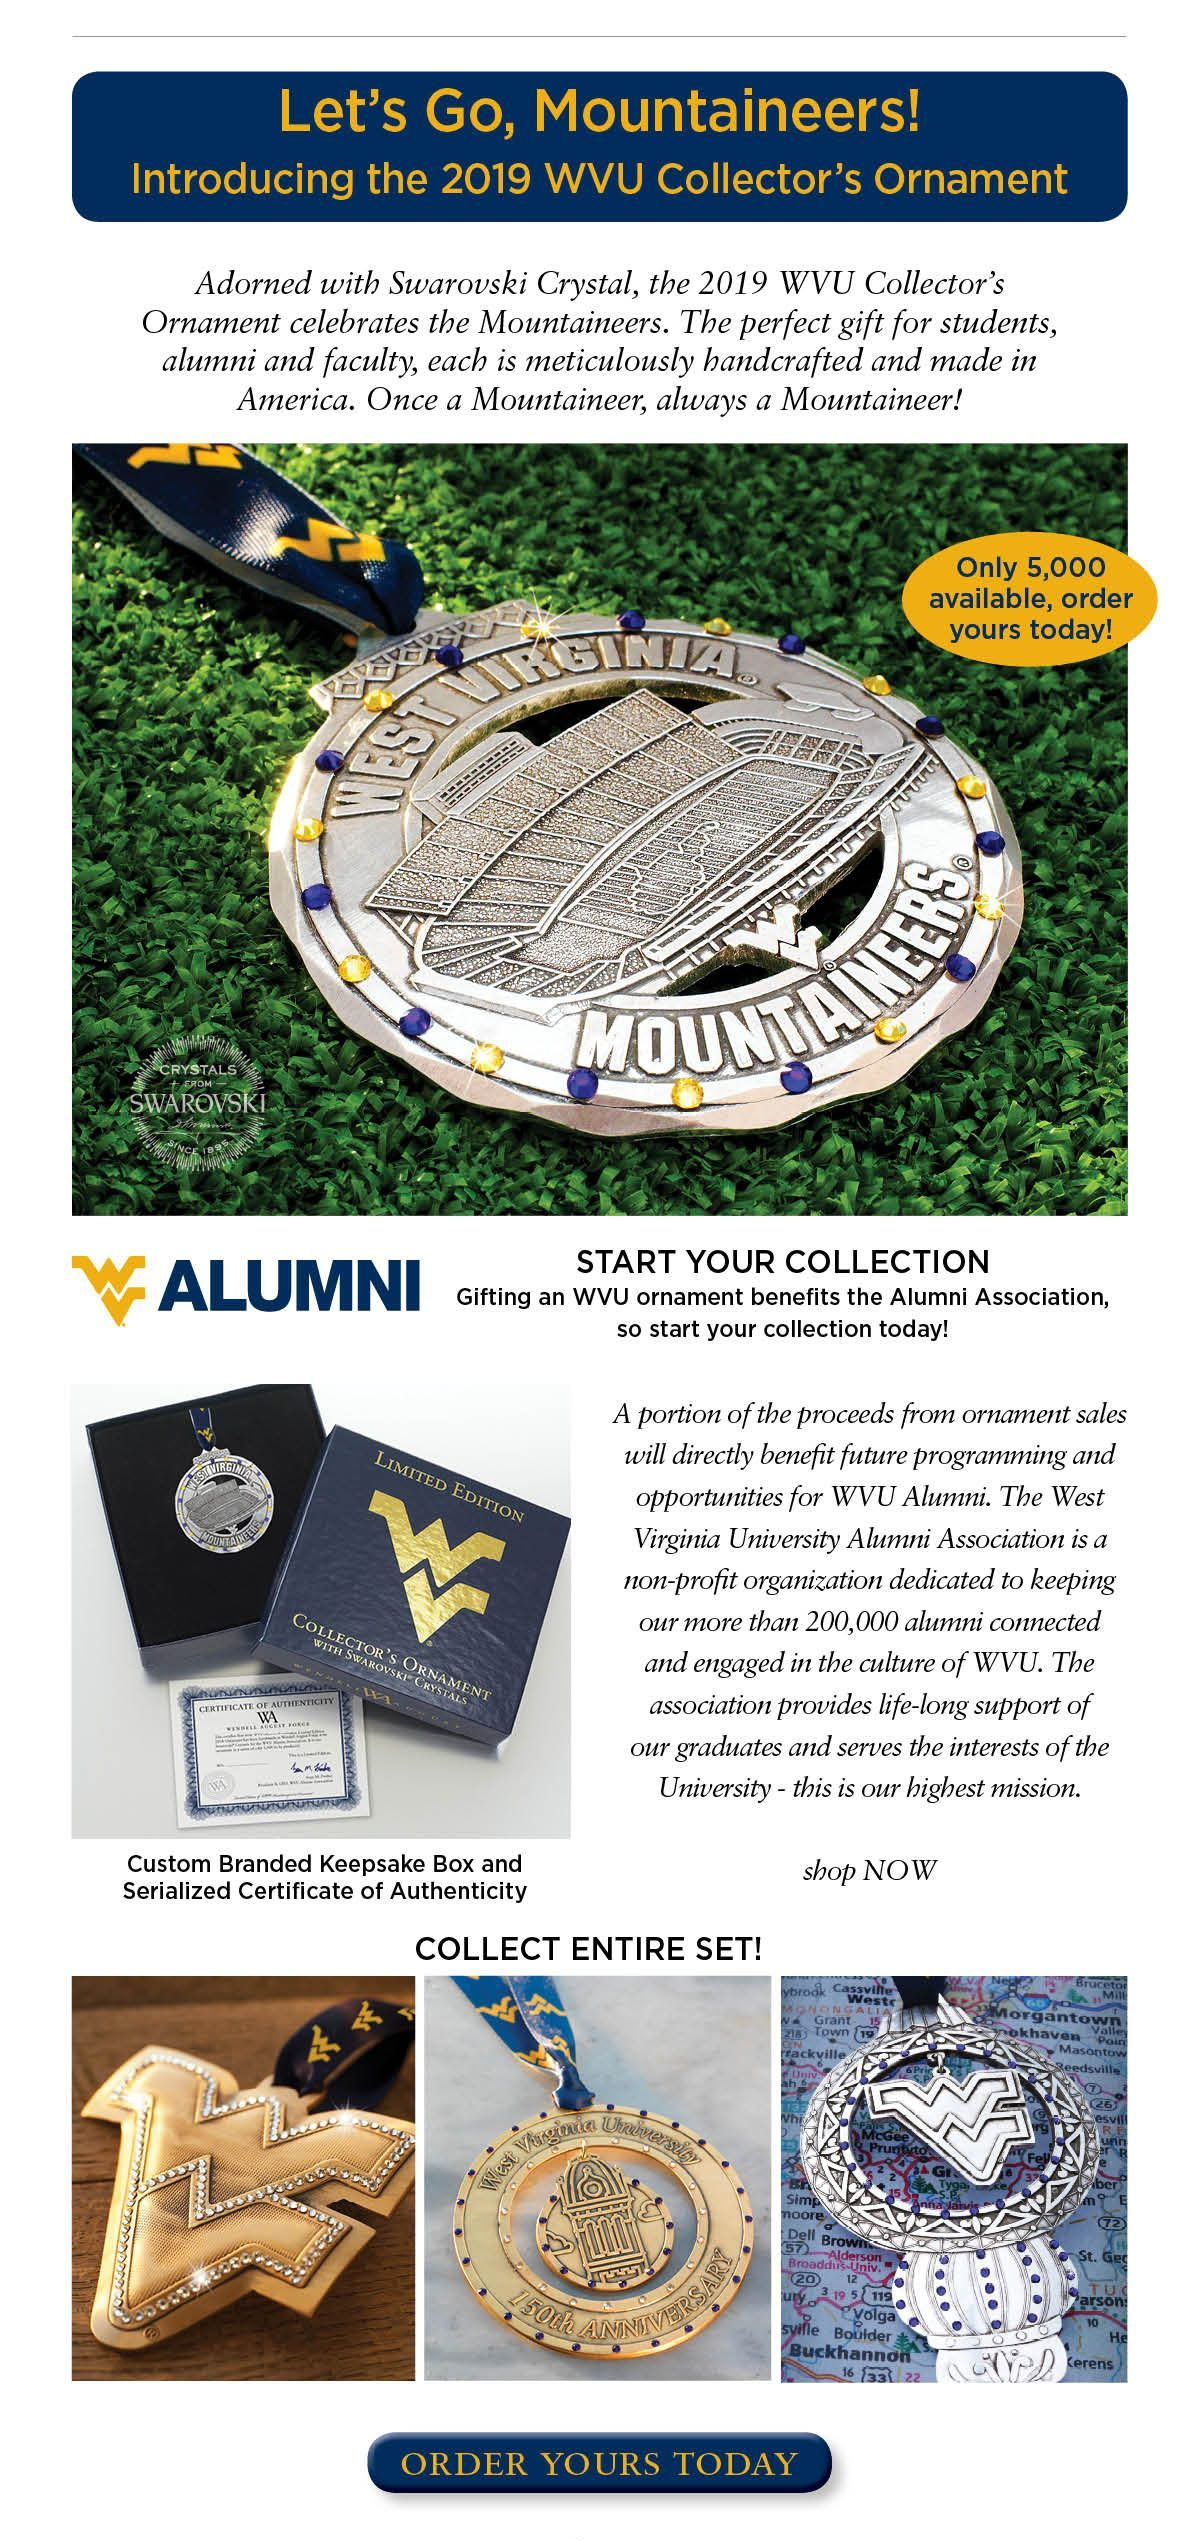 2019 WVU Mountaineers Collector's Ornament #wvumountaineers A great gift for students, fans and alumni.  Only 5,000 available.  Get yours today! #WVU #mountaineers #wvumountaineers